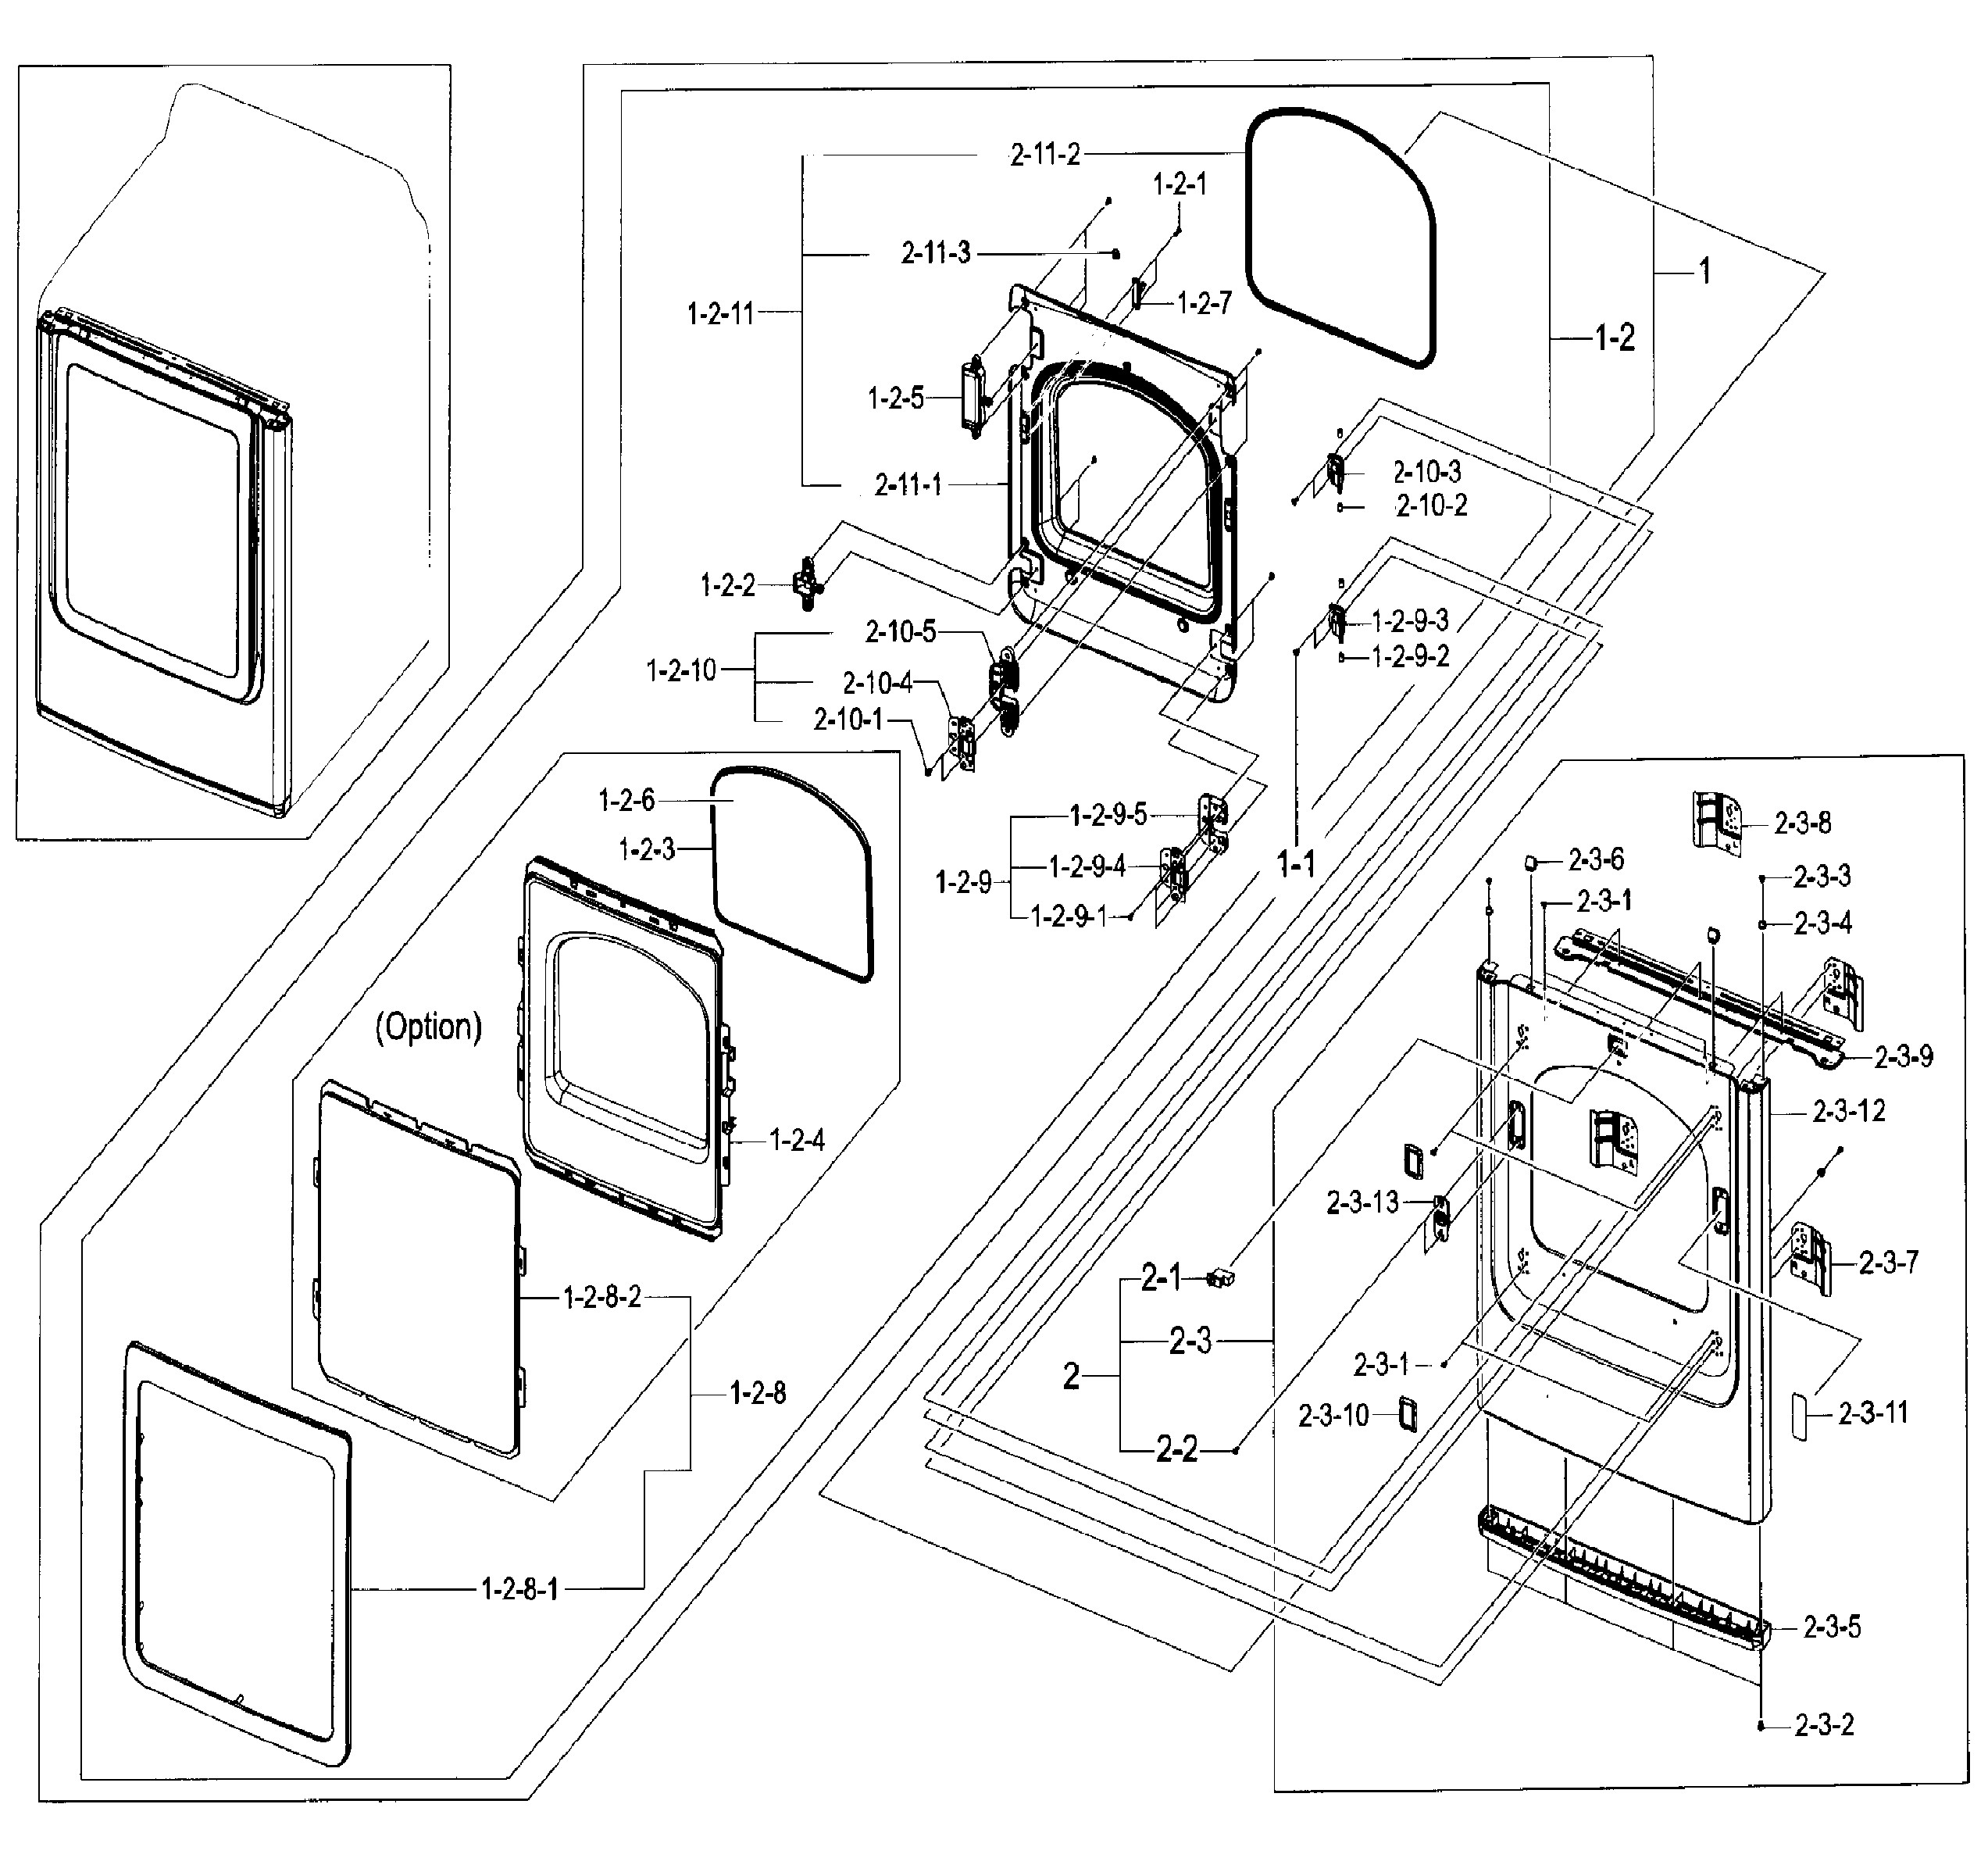 Frigidaire Affinity Dryer Parts Manual Wiring Diagram And List For Dryerparts Model Samsung Ep A Residential Genuine Of